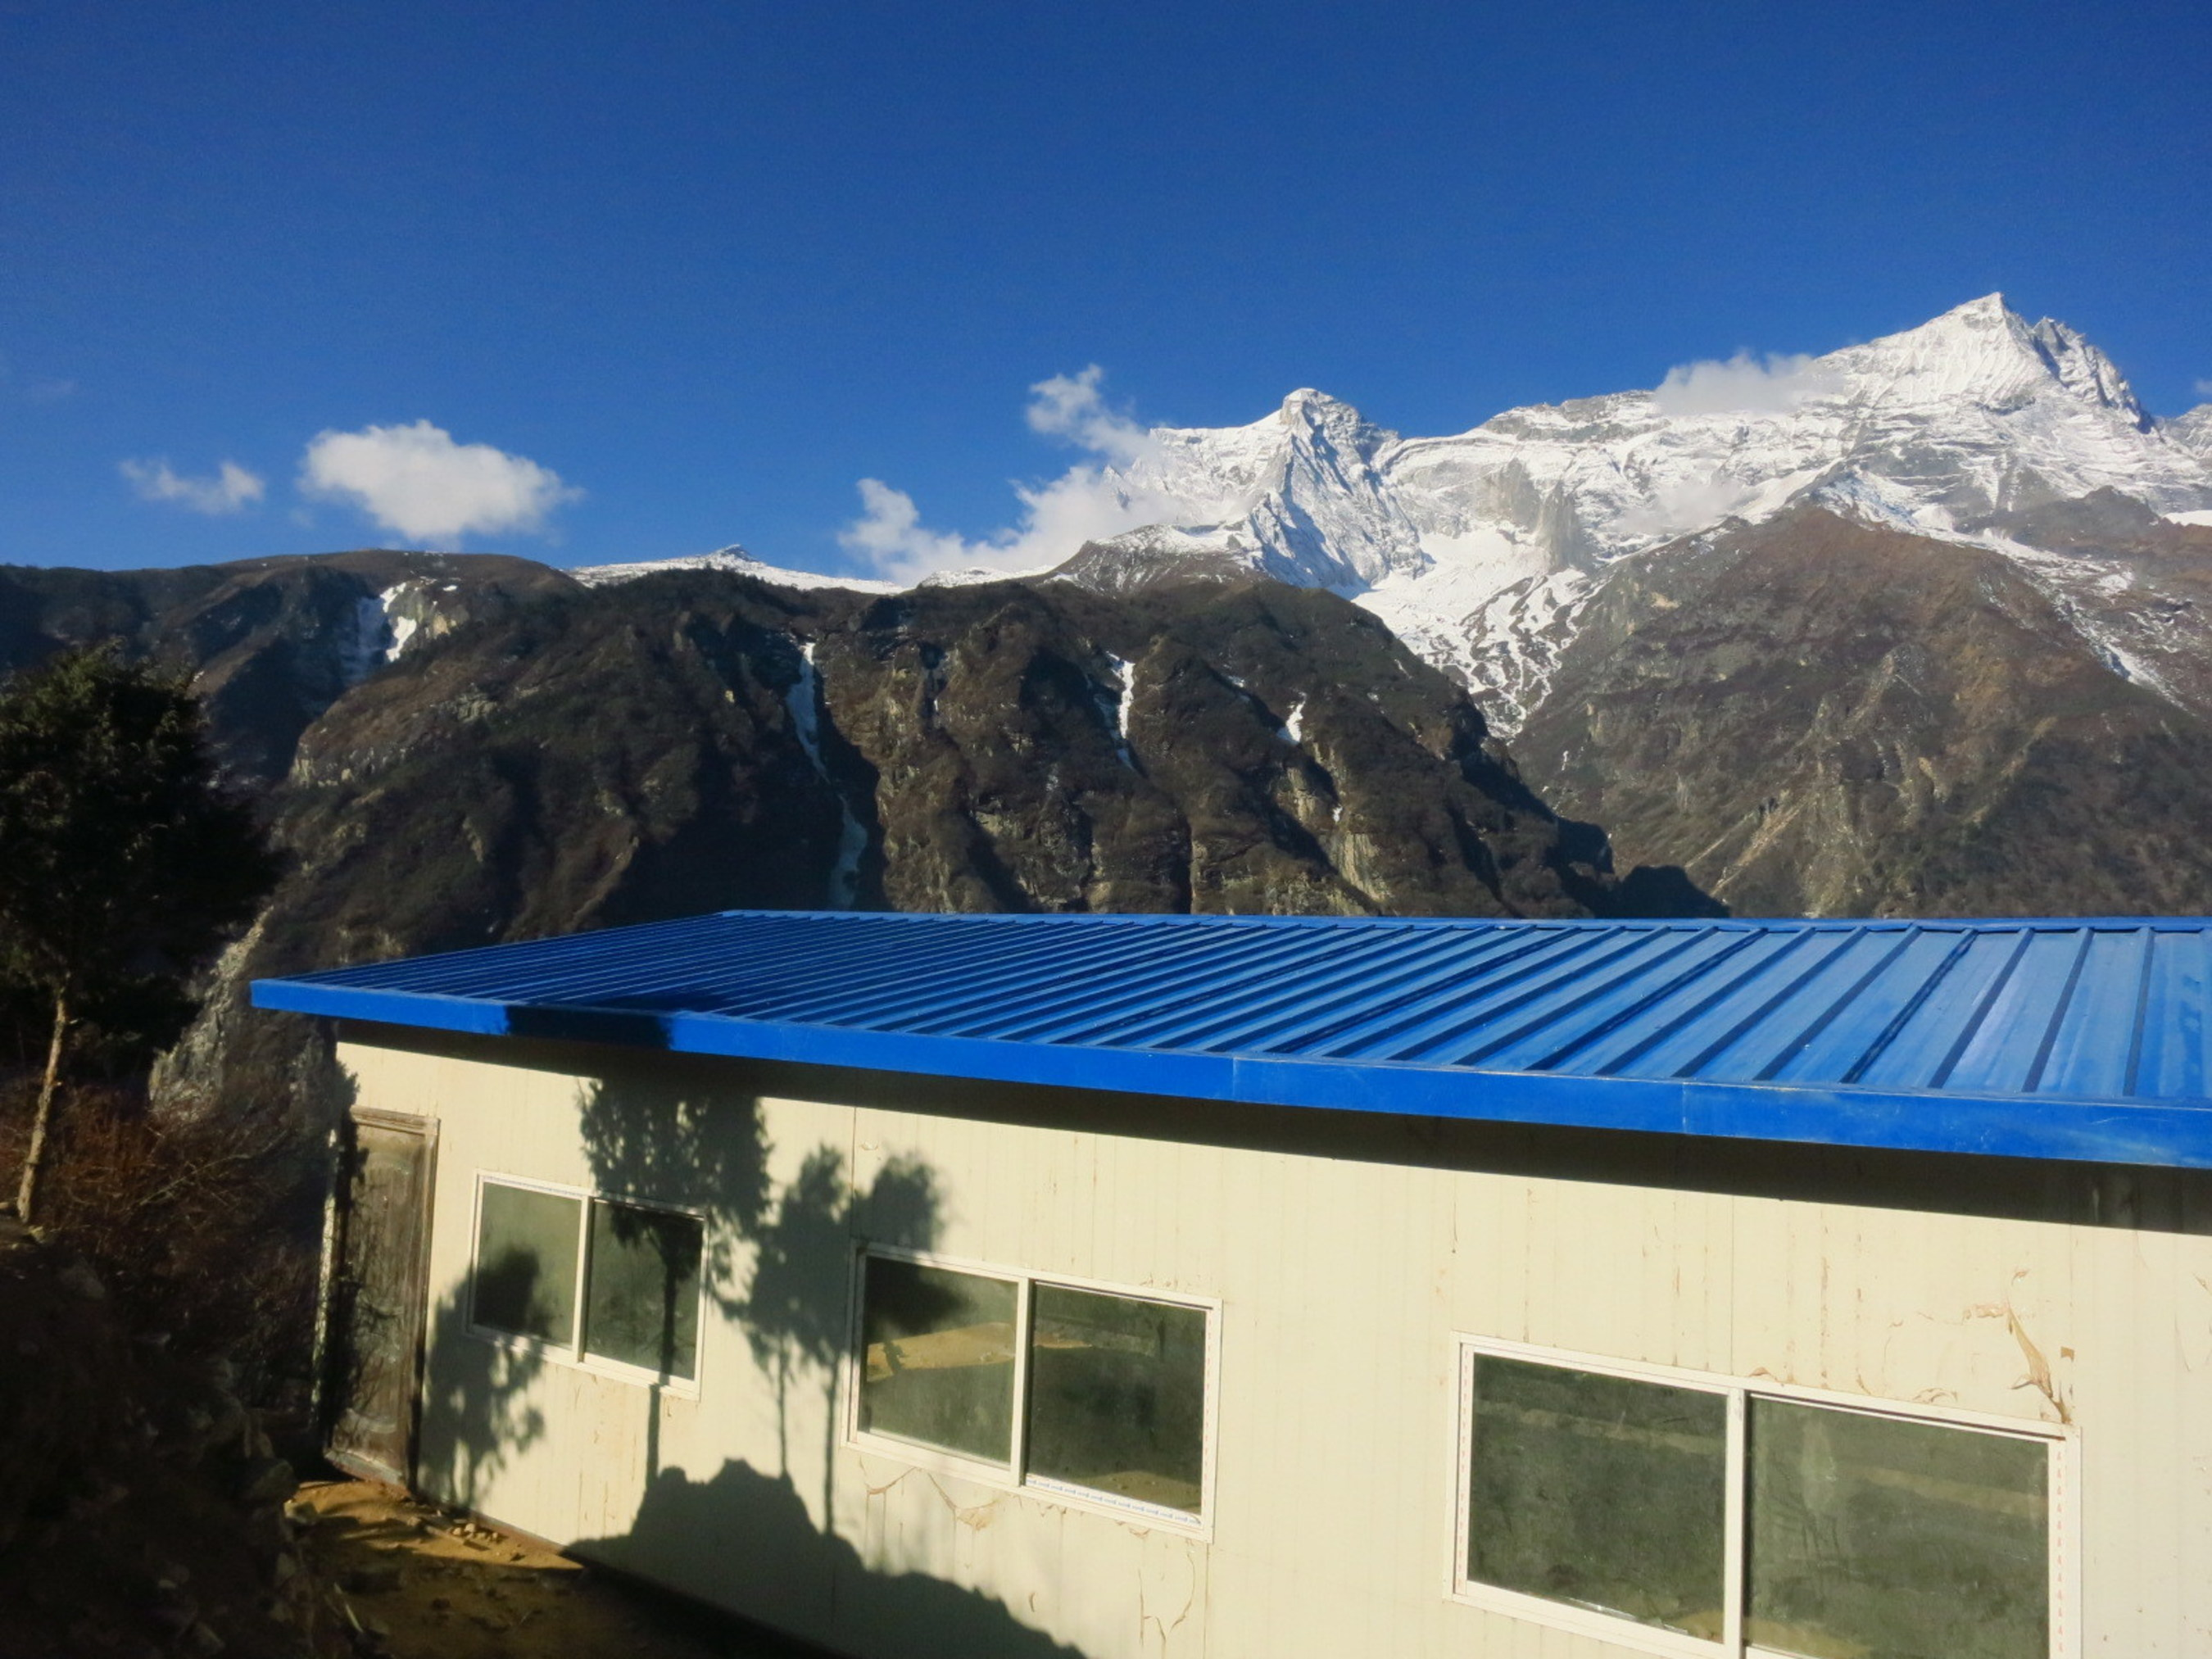 Namche Bazaar relief center in Nepal's Everest region. The new center will be stocked with essential supplies that can be accessed by the community in the event of a natural disaster. REI Adventures worked closely with its in-country guide team, Sagarmatha Buffer Zone Authority and Sagarmatha Pollution Control Committee.